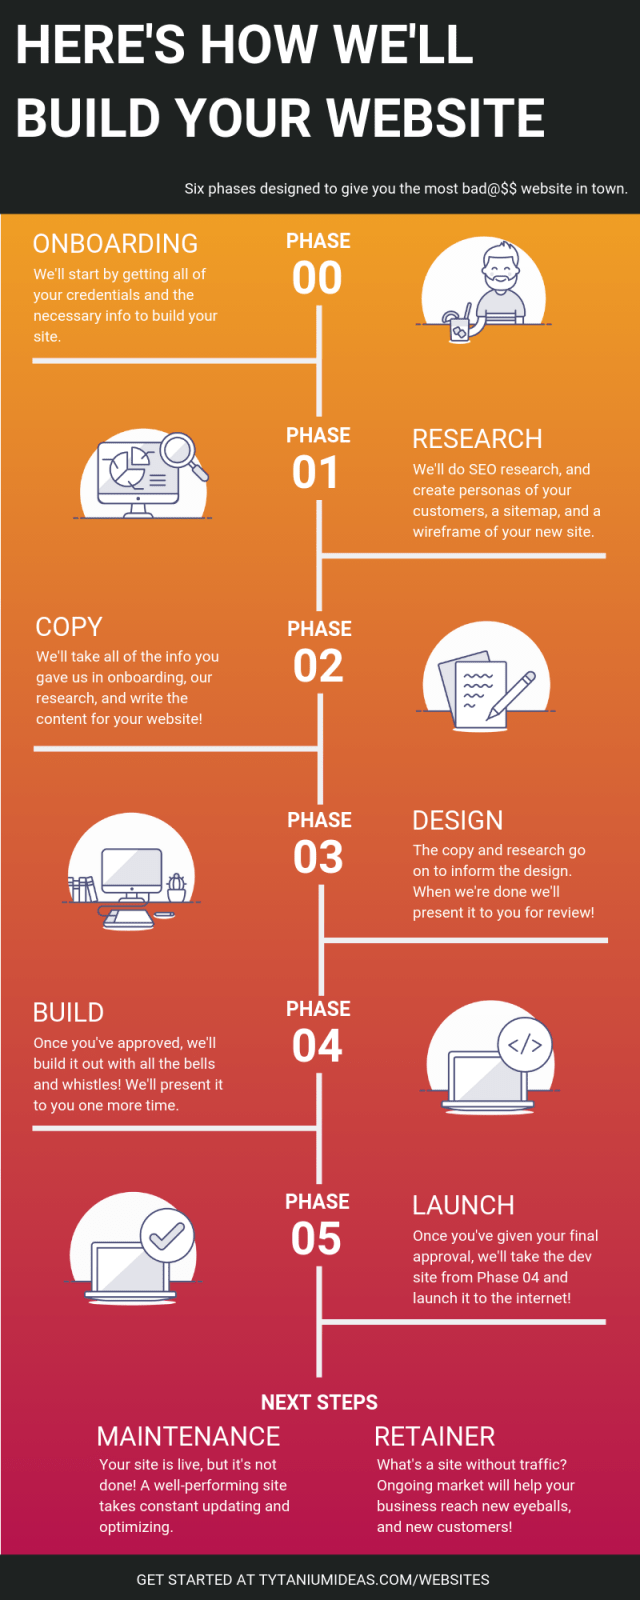 Infographic details the six phases of Tytanium's web design process; onboarding, research, copy, design, build, and launch.